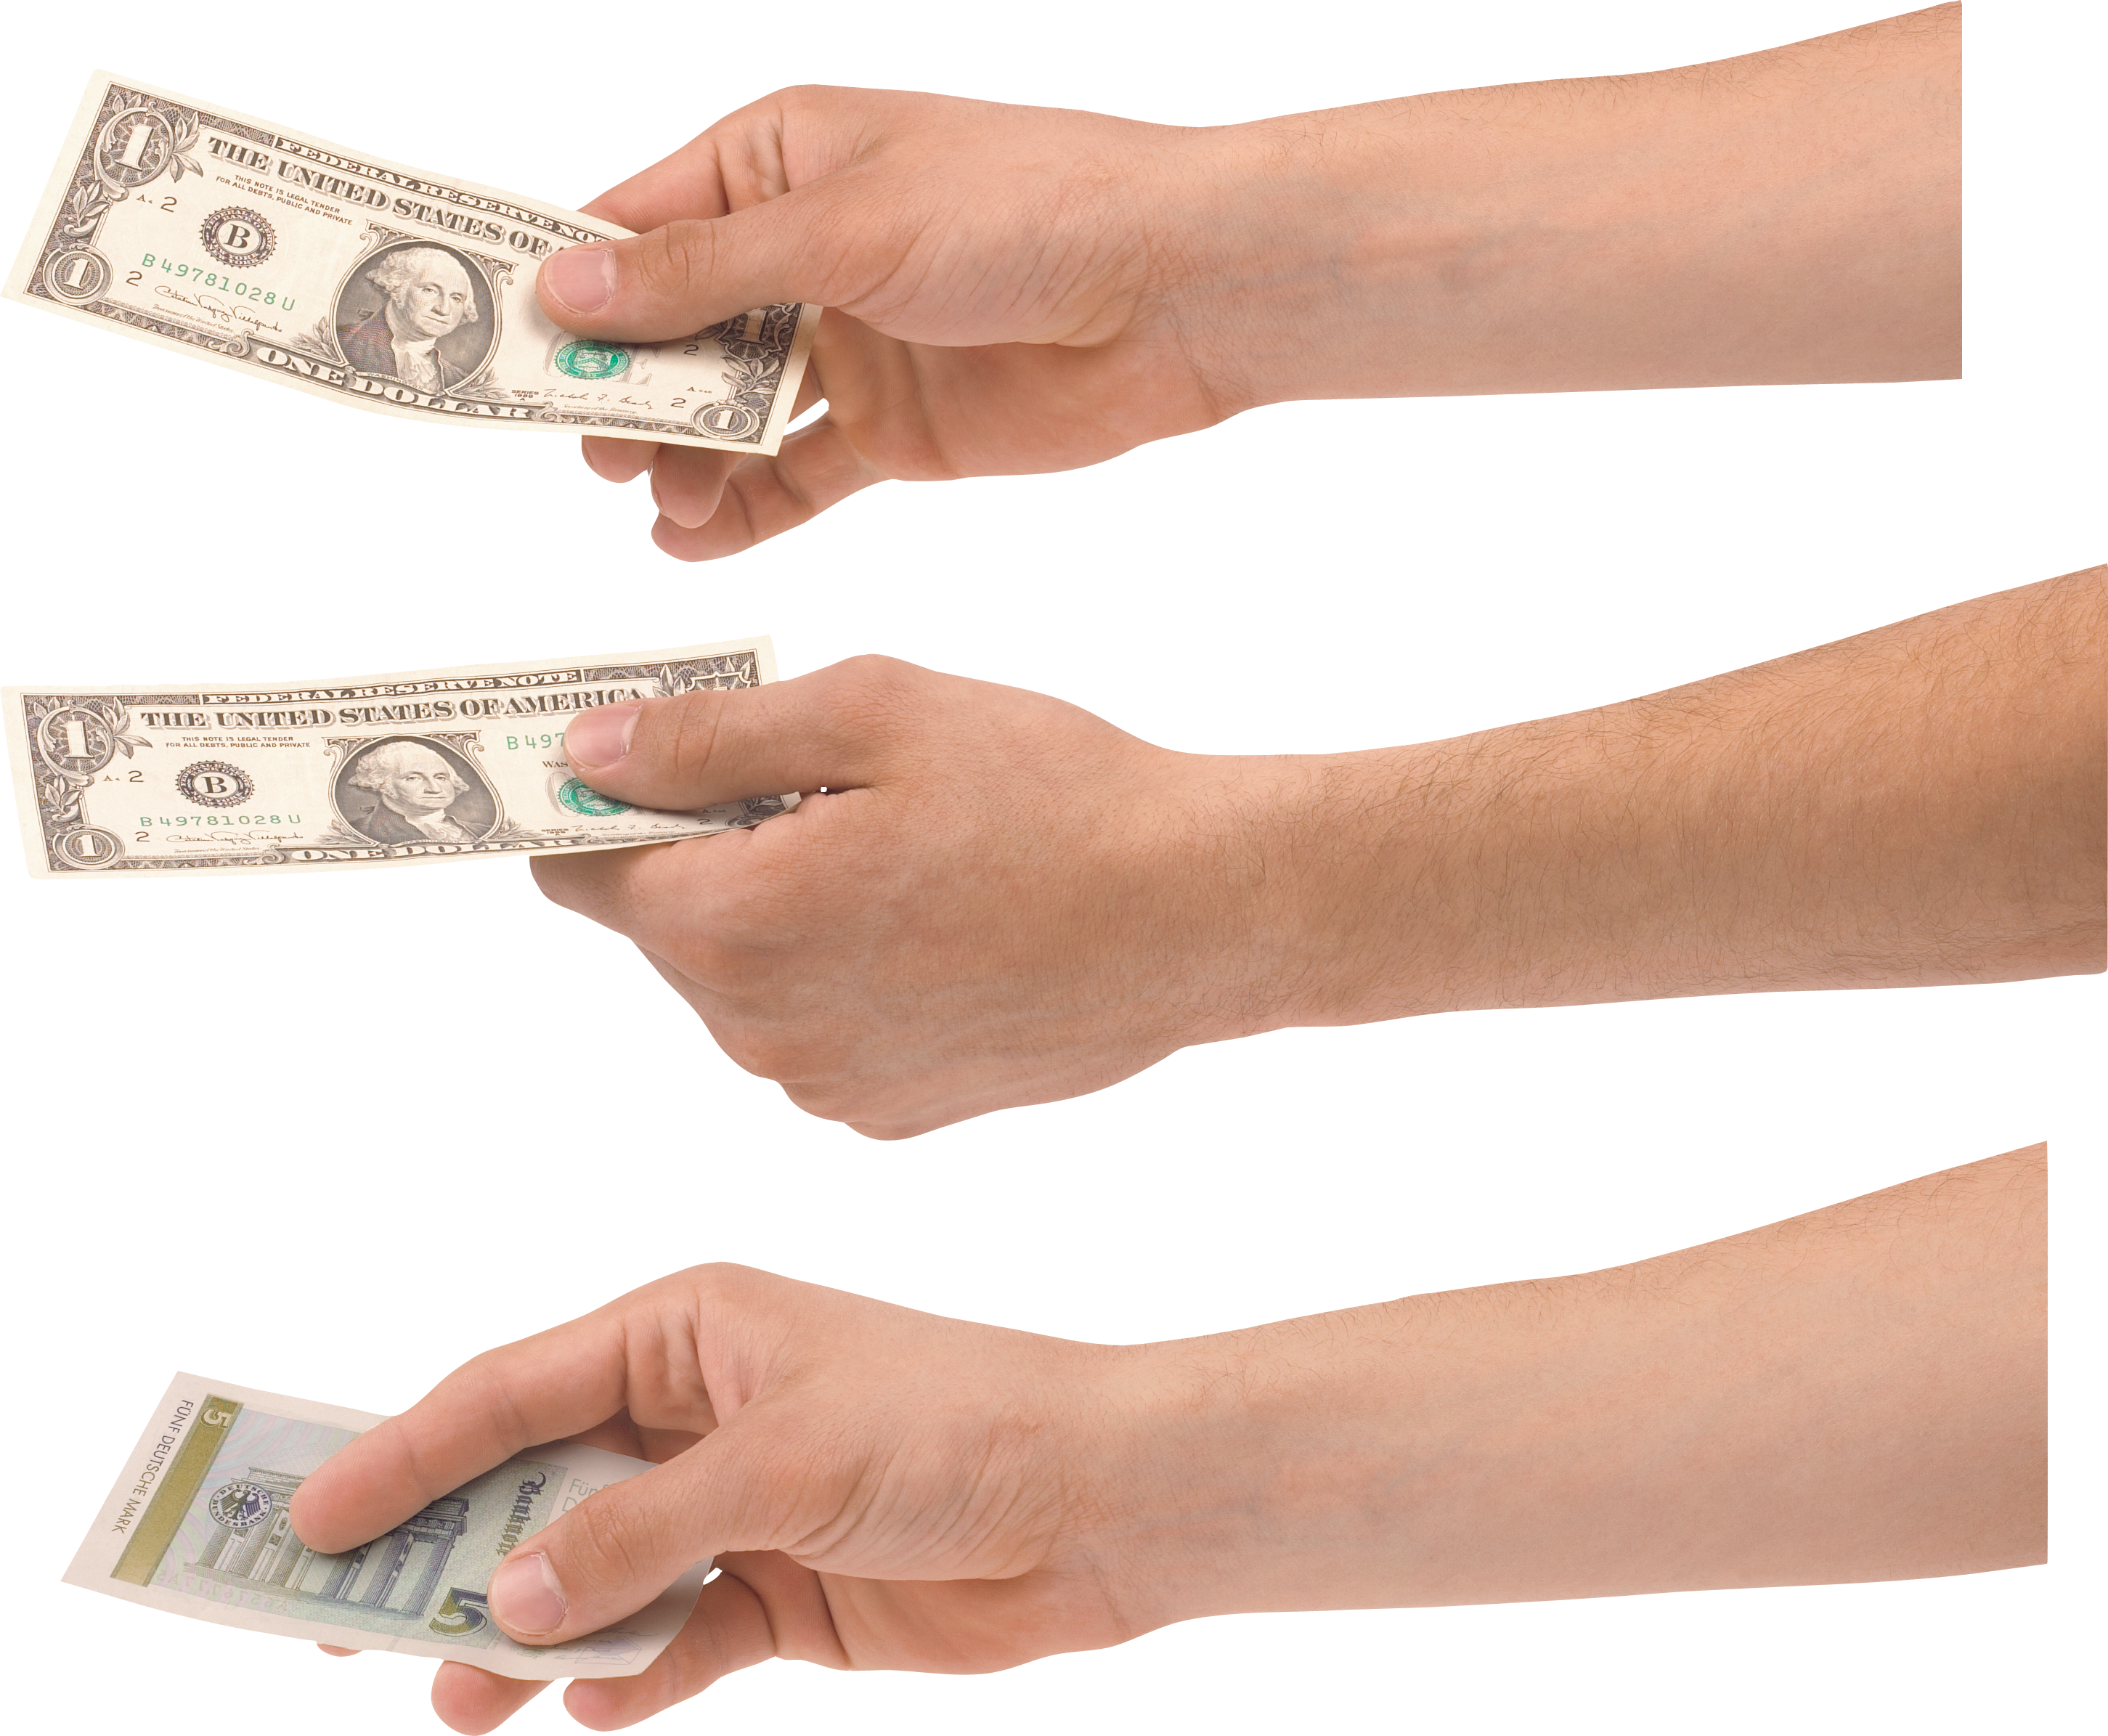 Handing out money clipart svg download Hand Holding Money One | Isolated Stock Photo by noBACKS.com svg download